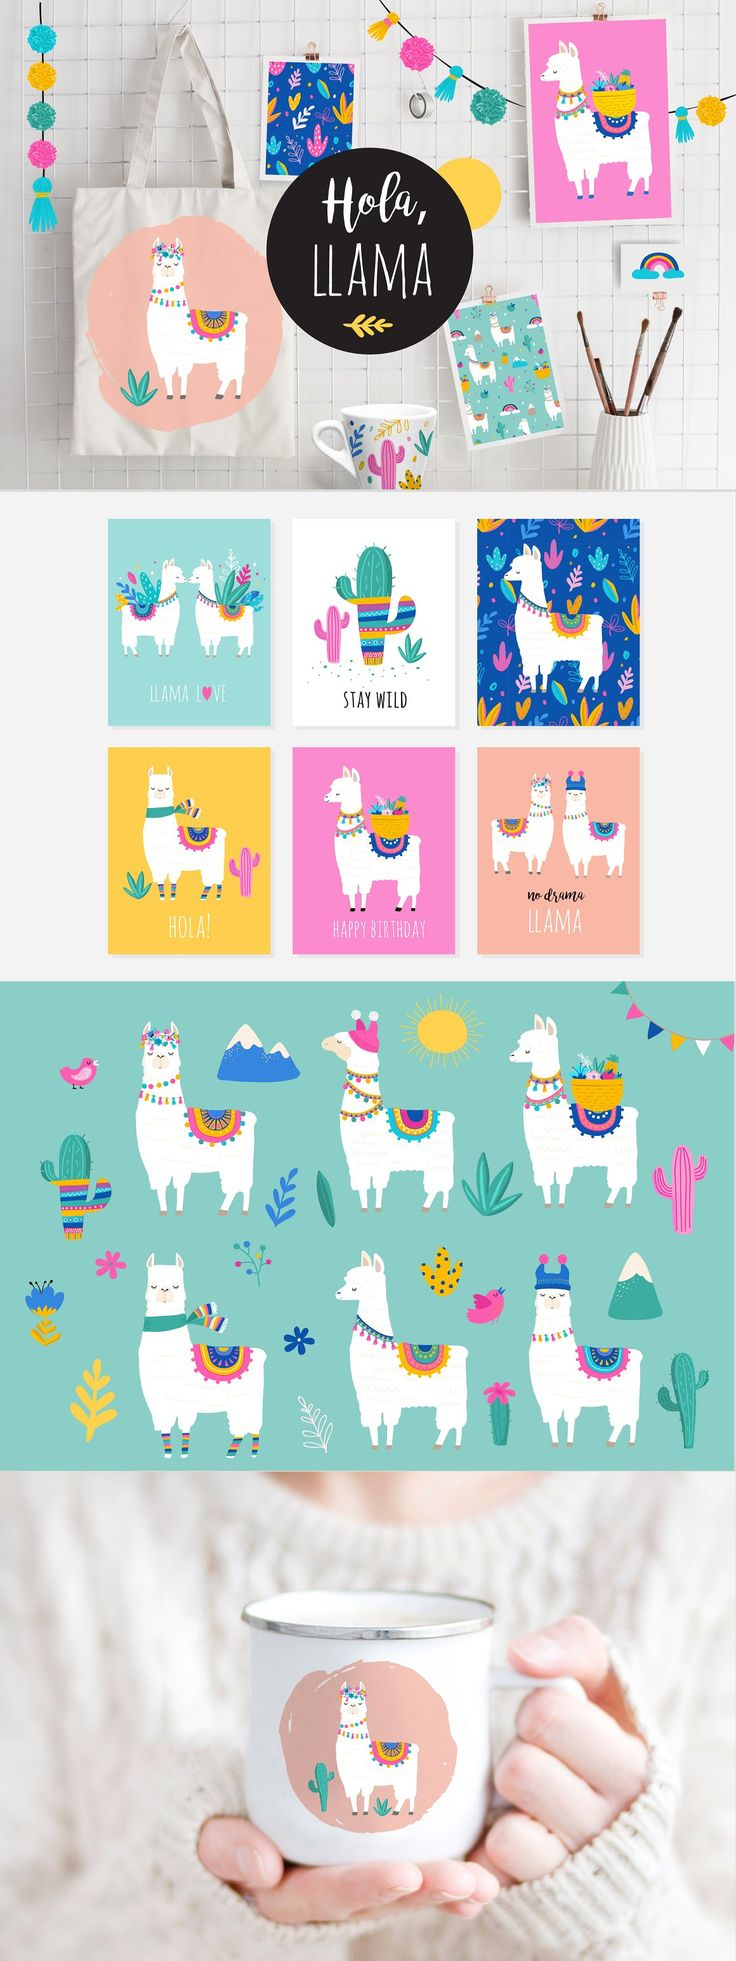 Hola Llama! Cute summer collection summer trendy alpaca llama lama vibrant colorful pattern cactus cacti jungle leaf palm lovely sweet cute boho bohemian south america marish latin america nature card birthday flag fiesta love hola poster print sticker t-shirt kids baby notebook tattoo temporary girly animal doodle vector art background beautiful bright cartoon character childhood children cute llama decor decoration delicate design dot pattern dots drawing elements funny girl greeting hand draw